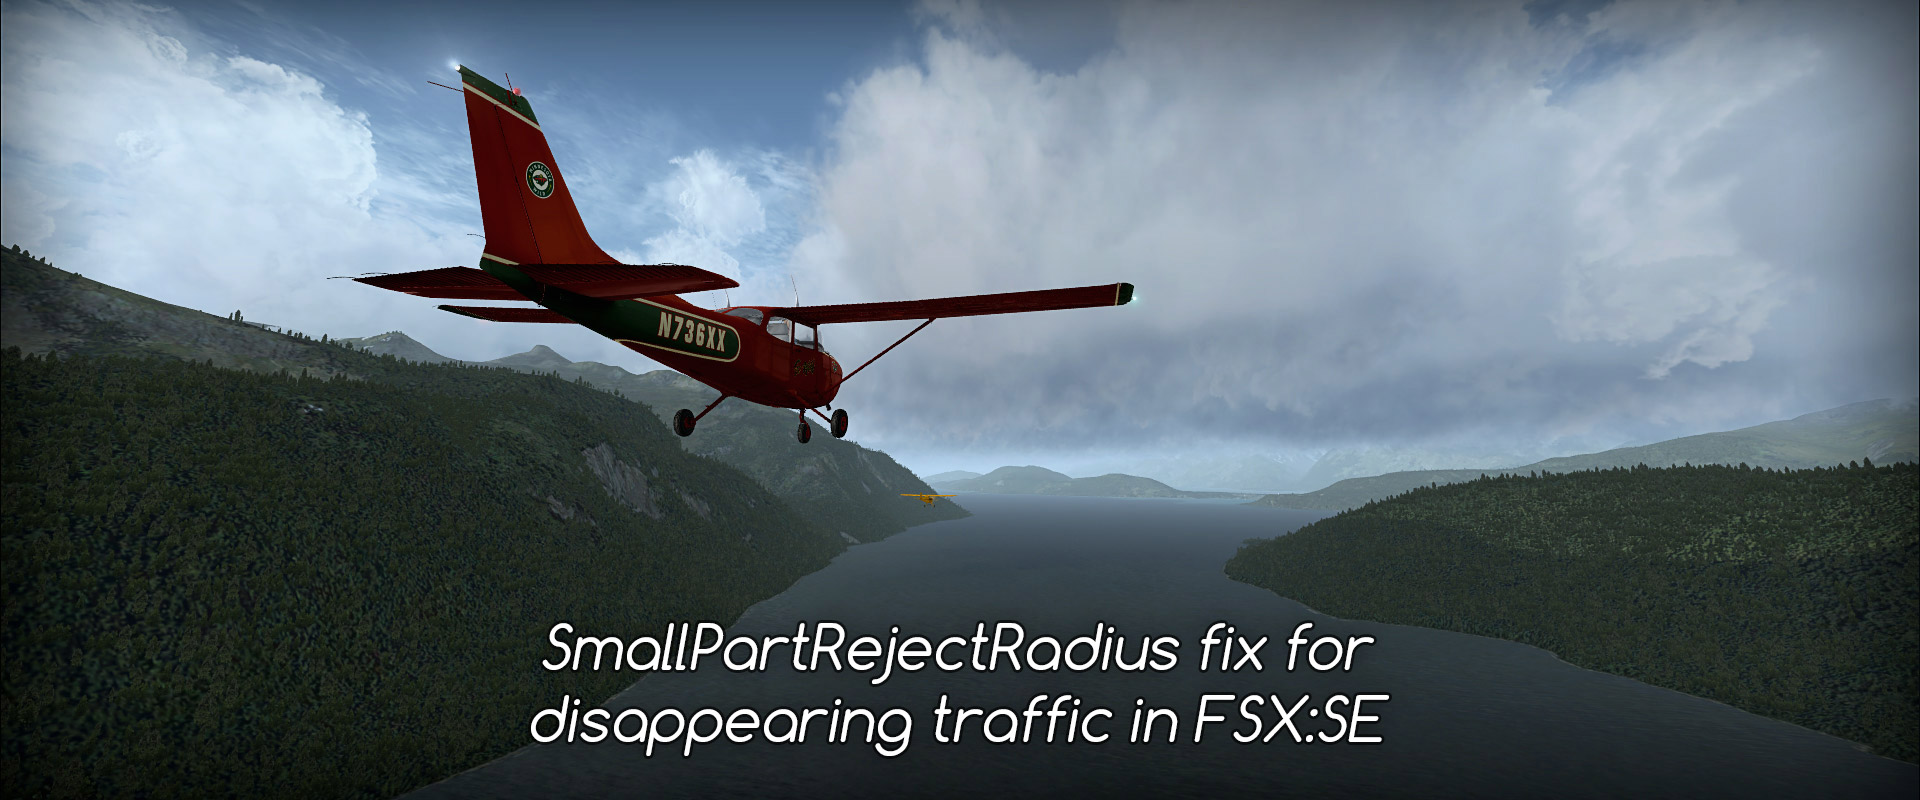 SmallPartRejectRadius - fix disappearing traffic in FSX Steam • C